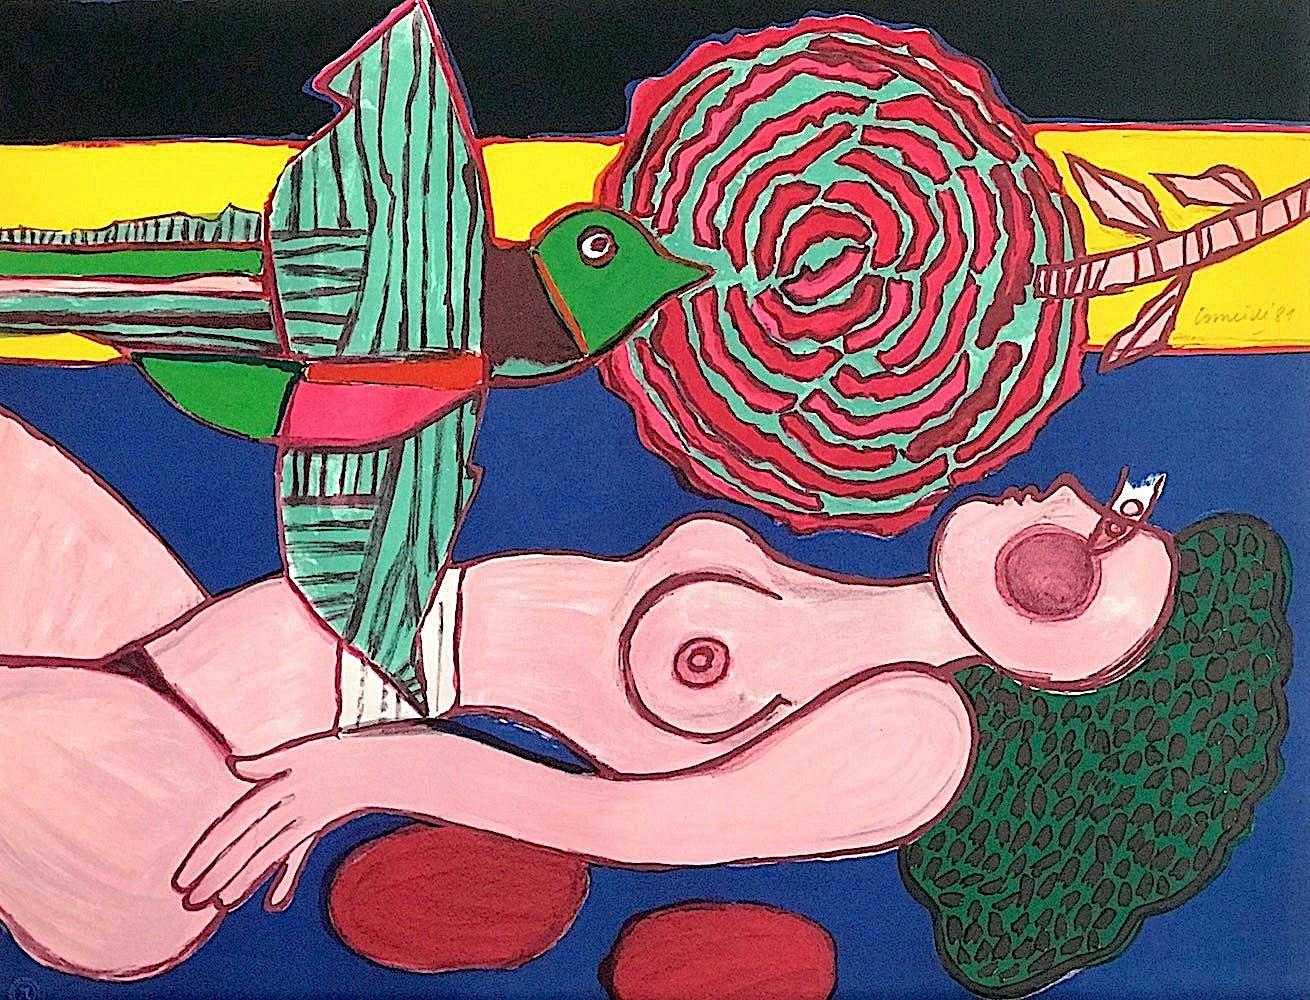 NU À LA ROSE Signed Hand Drawn Lithograph, Pink Female Nude, Exotic Bird w Rose